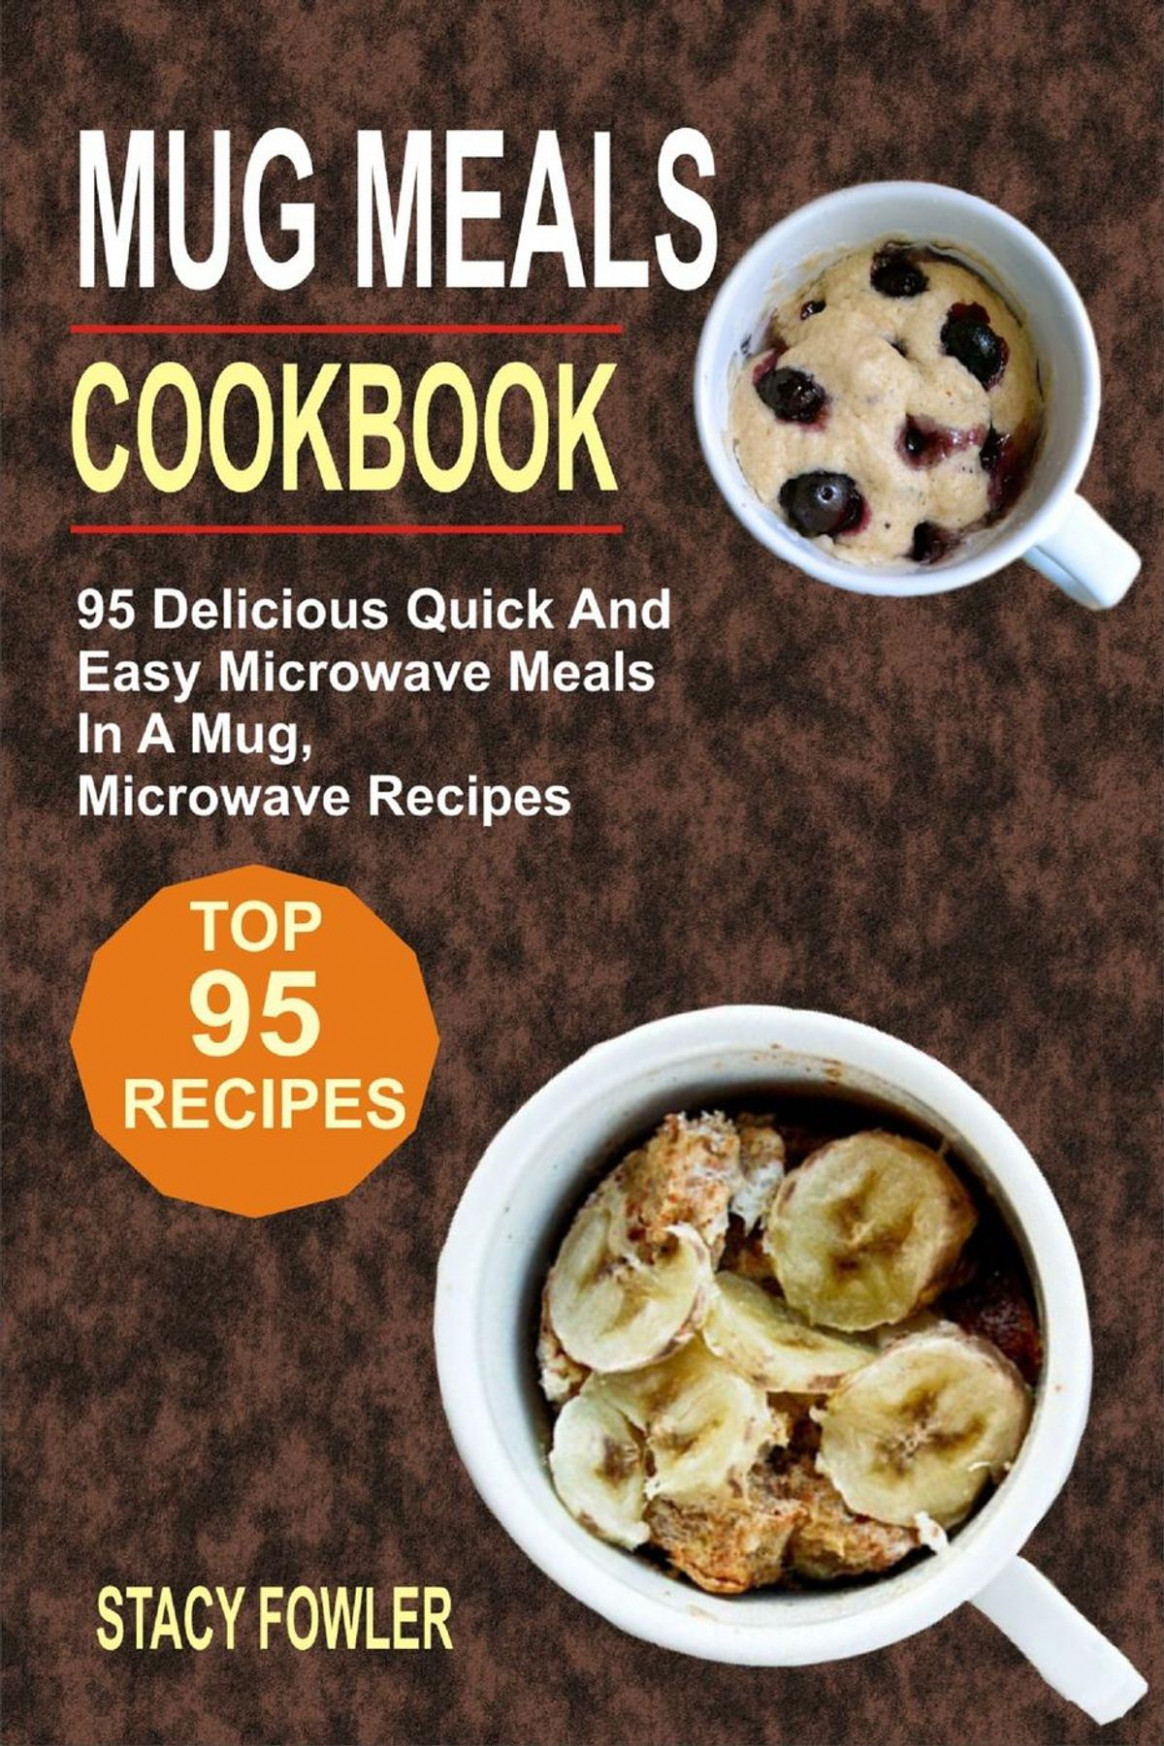 Mug Meals Cookbook: 12 Delicious Quick And Easy Microwave Meals In A Mug,  Microwave Recipes ebook by Stacy Fowler - Rakuten Kobo - this morning recipes john torode chicken